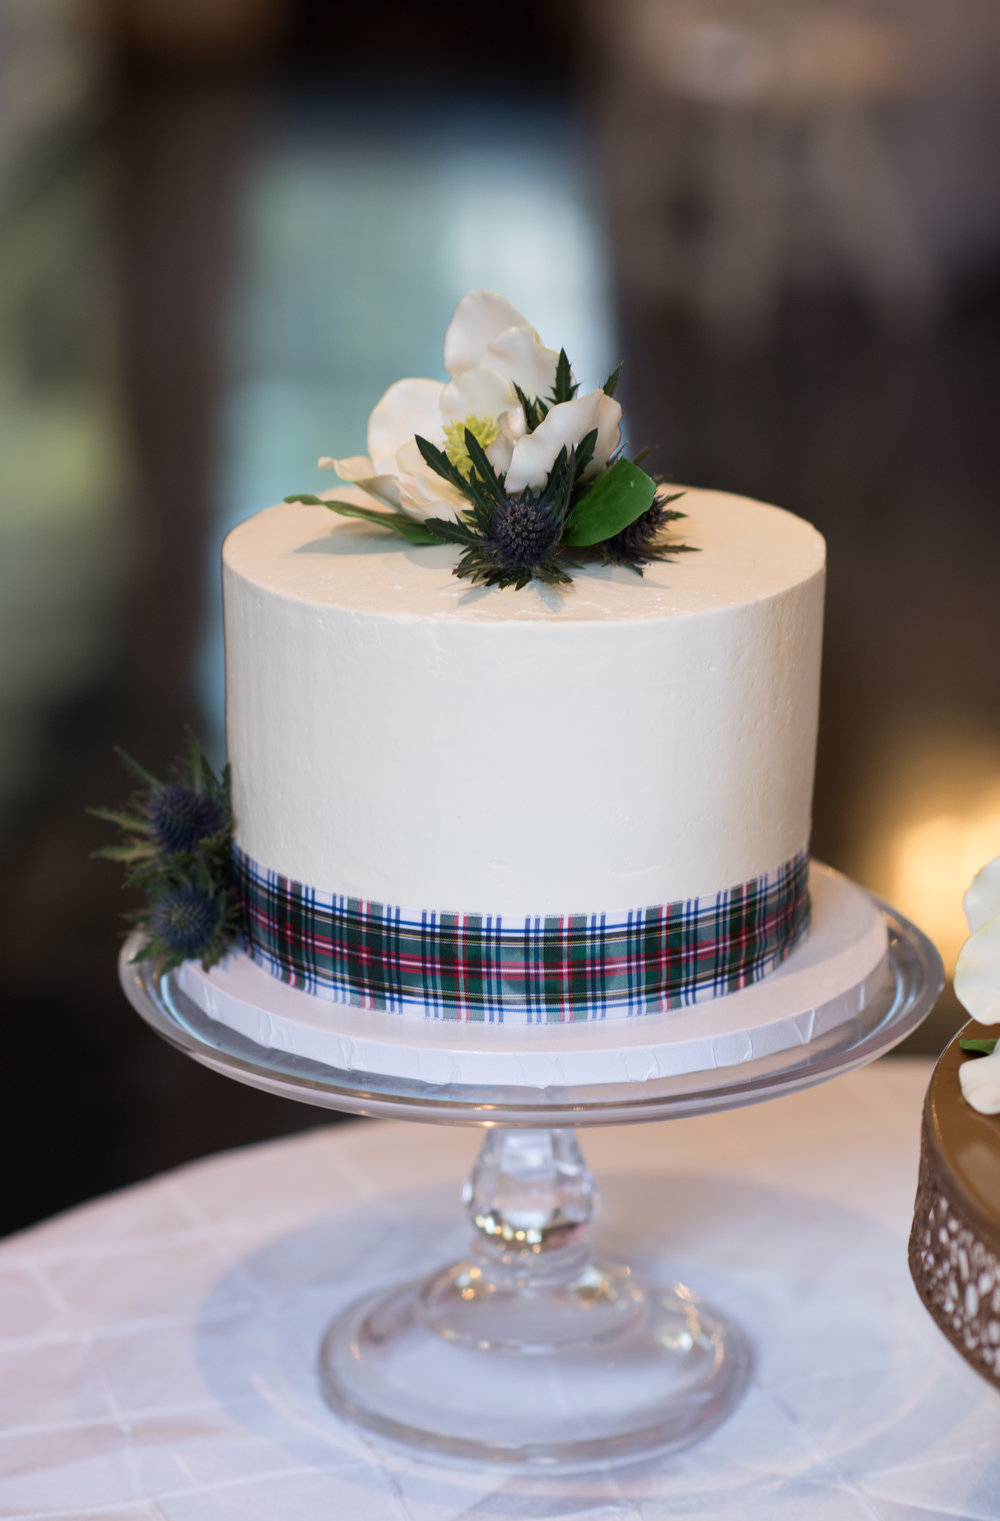 Another shot of the groom's cake adorned with fresh Scottish Thistle and tartan ribbon.